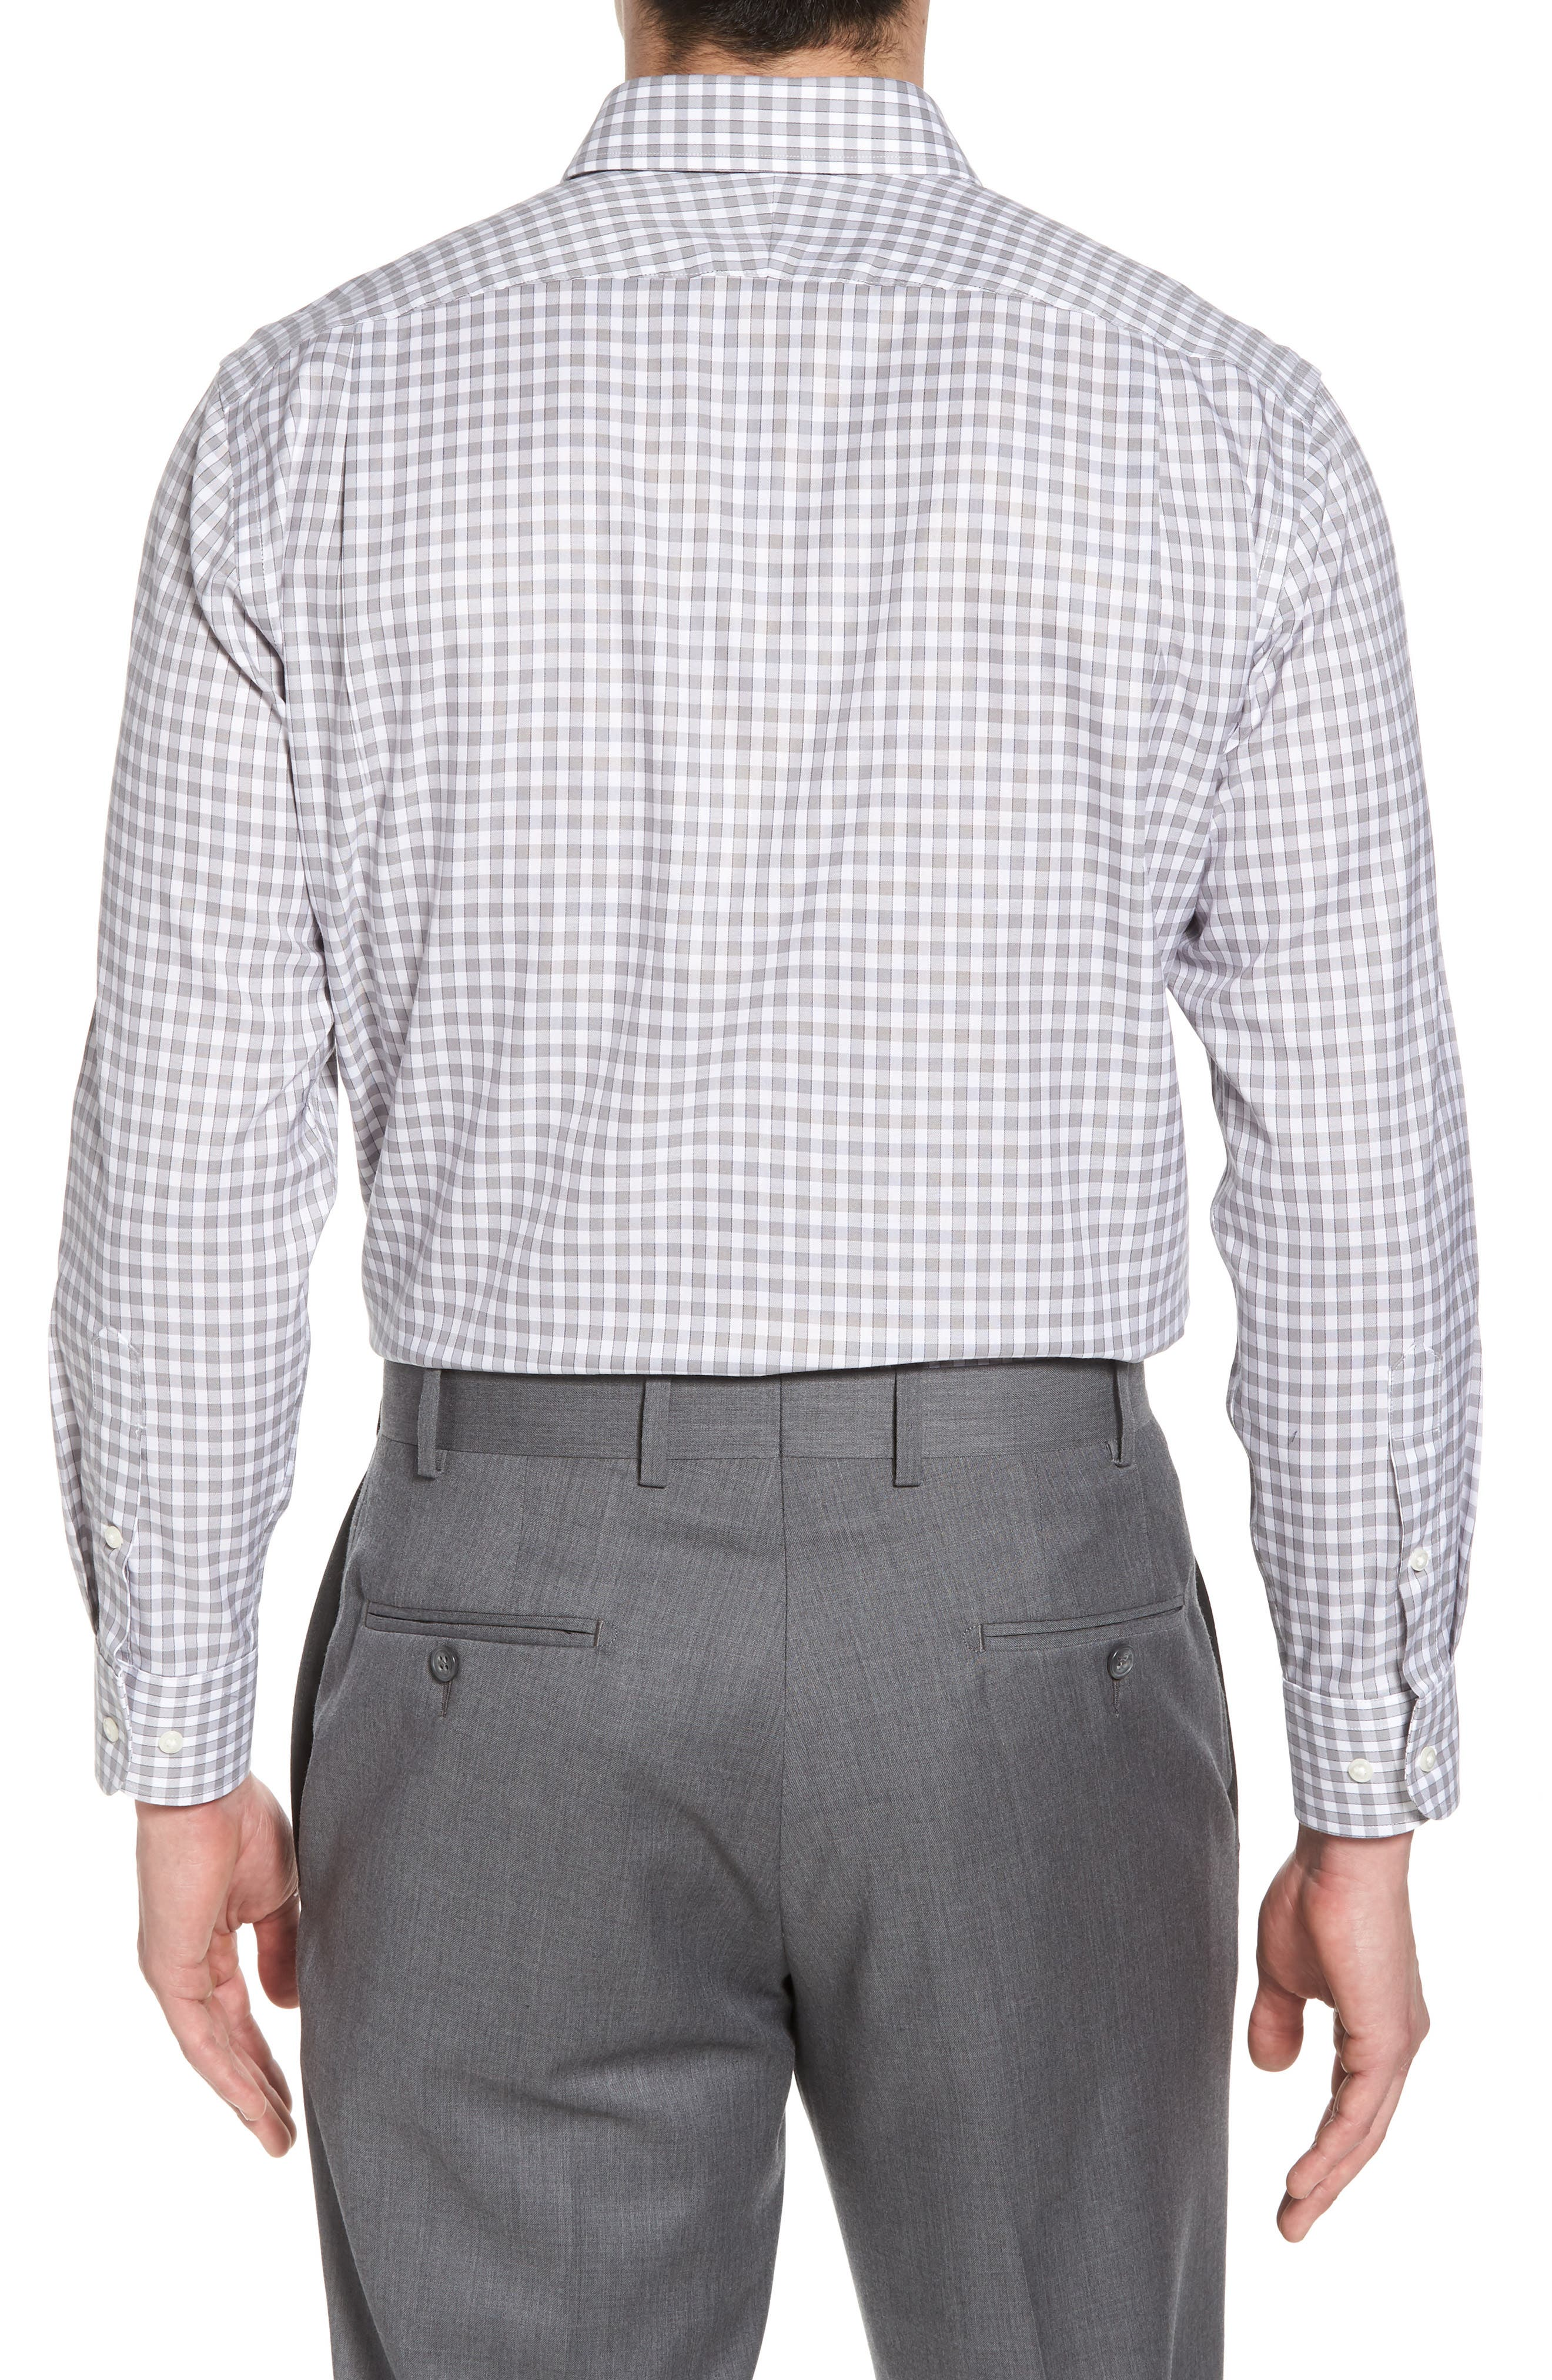 Alternate Image 2  - Nordstrom Men's Shop Smartcare™ Trim Fit Check Dress Shirt